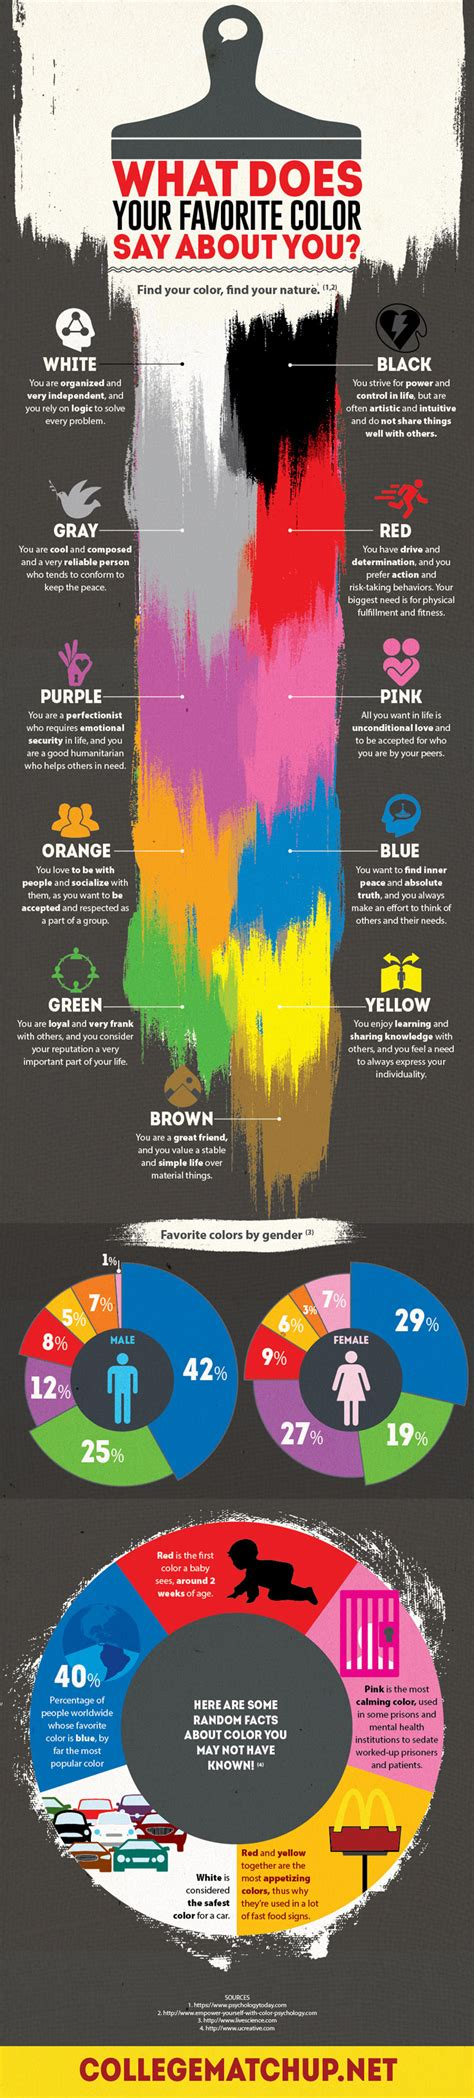 What Does Your Favorite Color Say About You | balunywa bytes what does your favorite color say about you